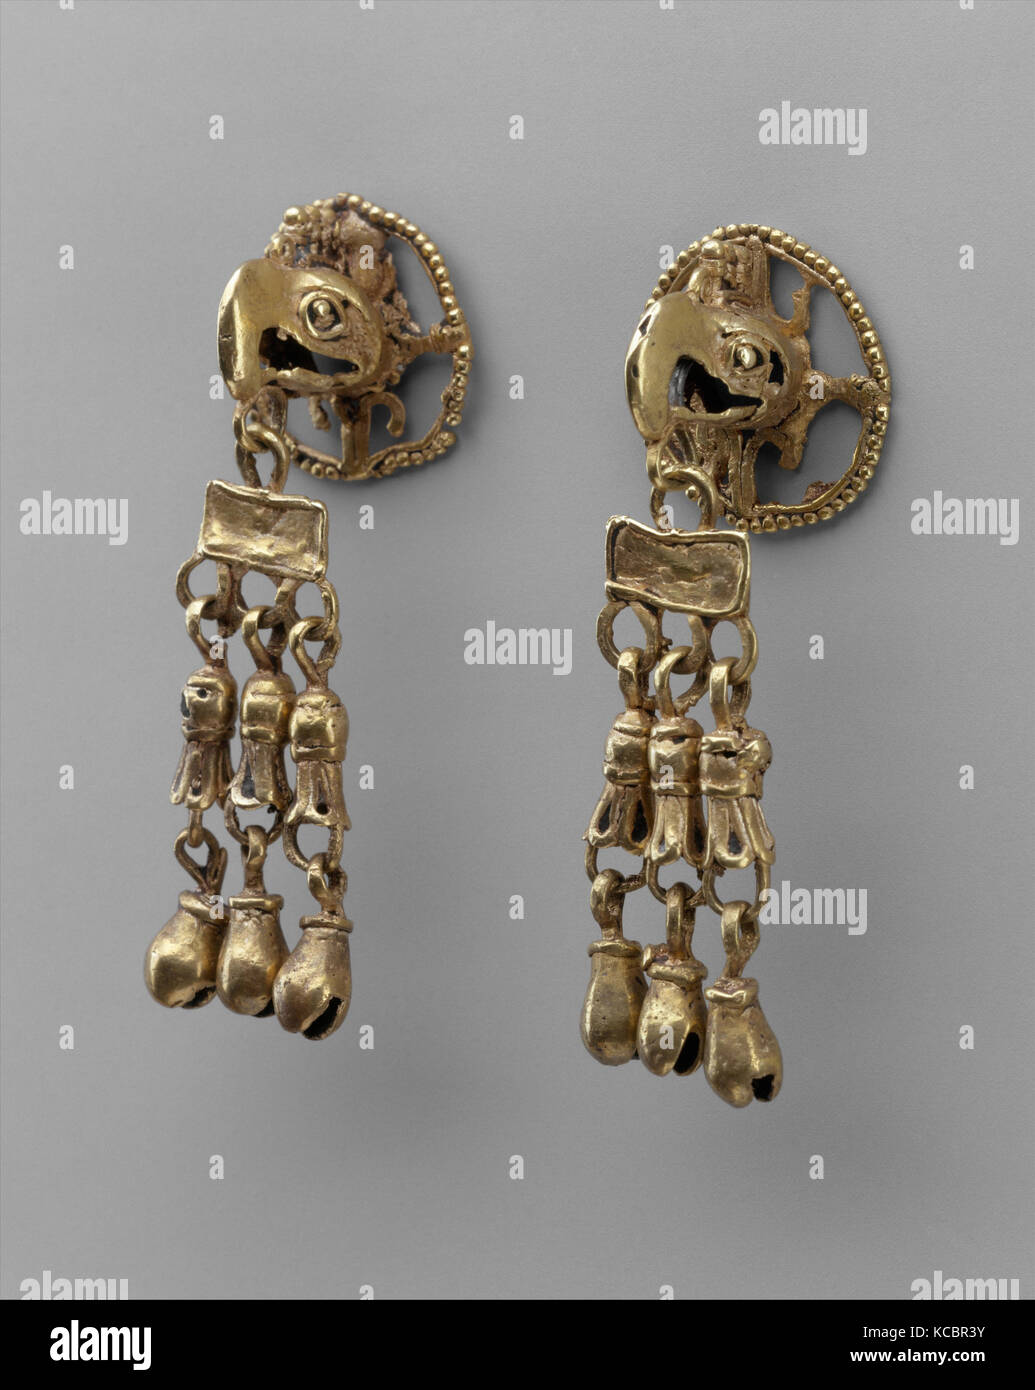 Golden earrings - an ornament with a centuries-old history